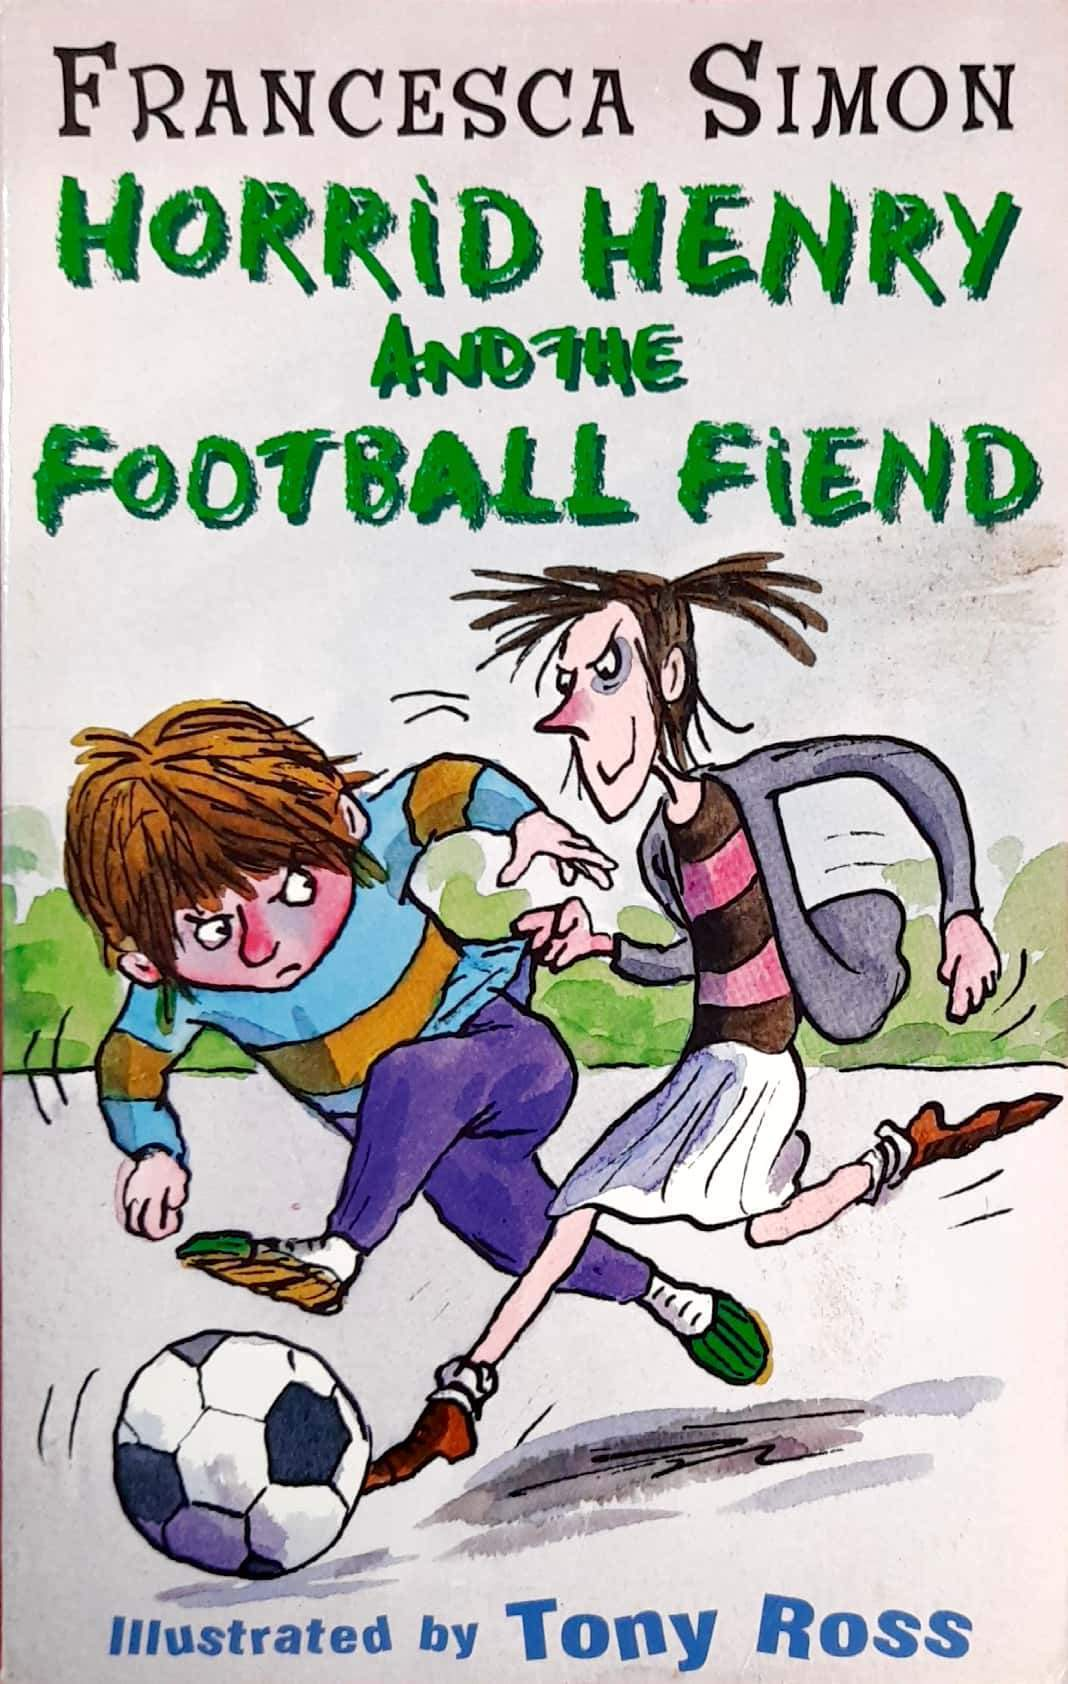 Horrid Henry and the Football Fiend (Horrid Henry #14)